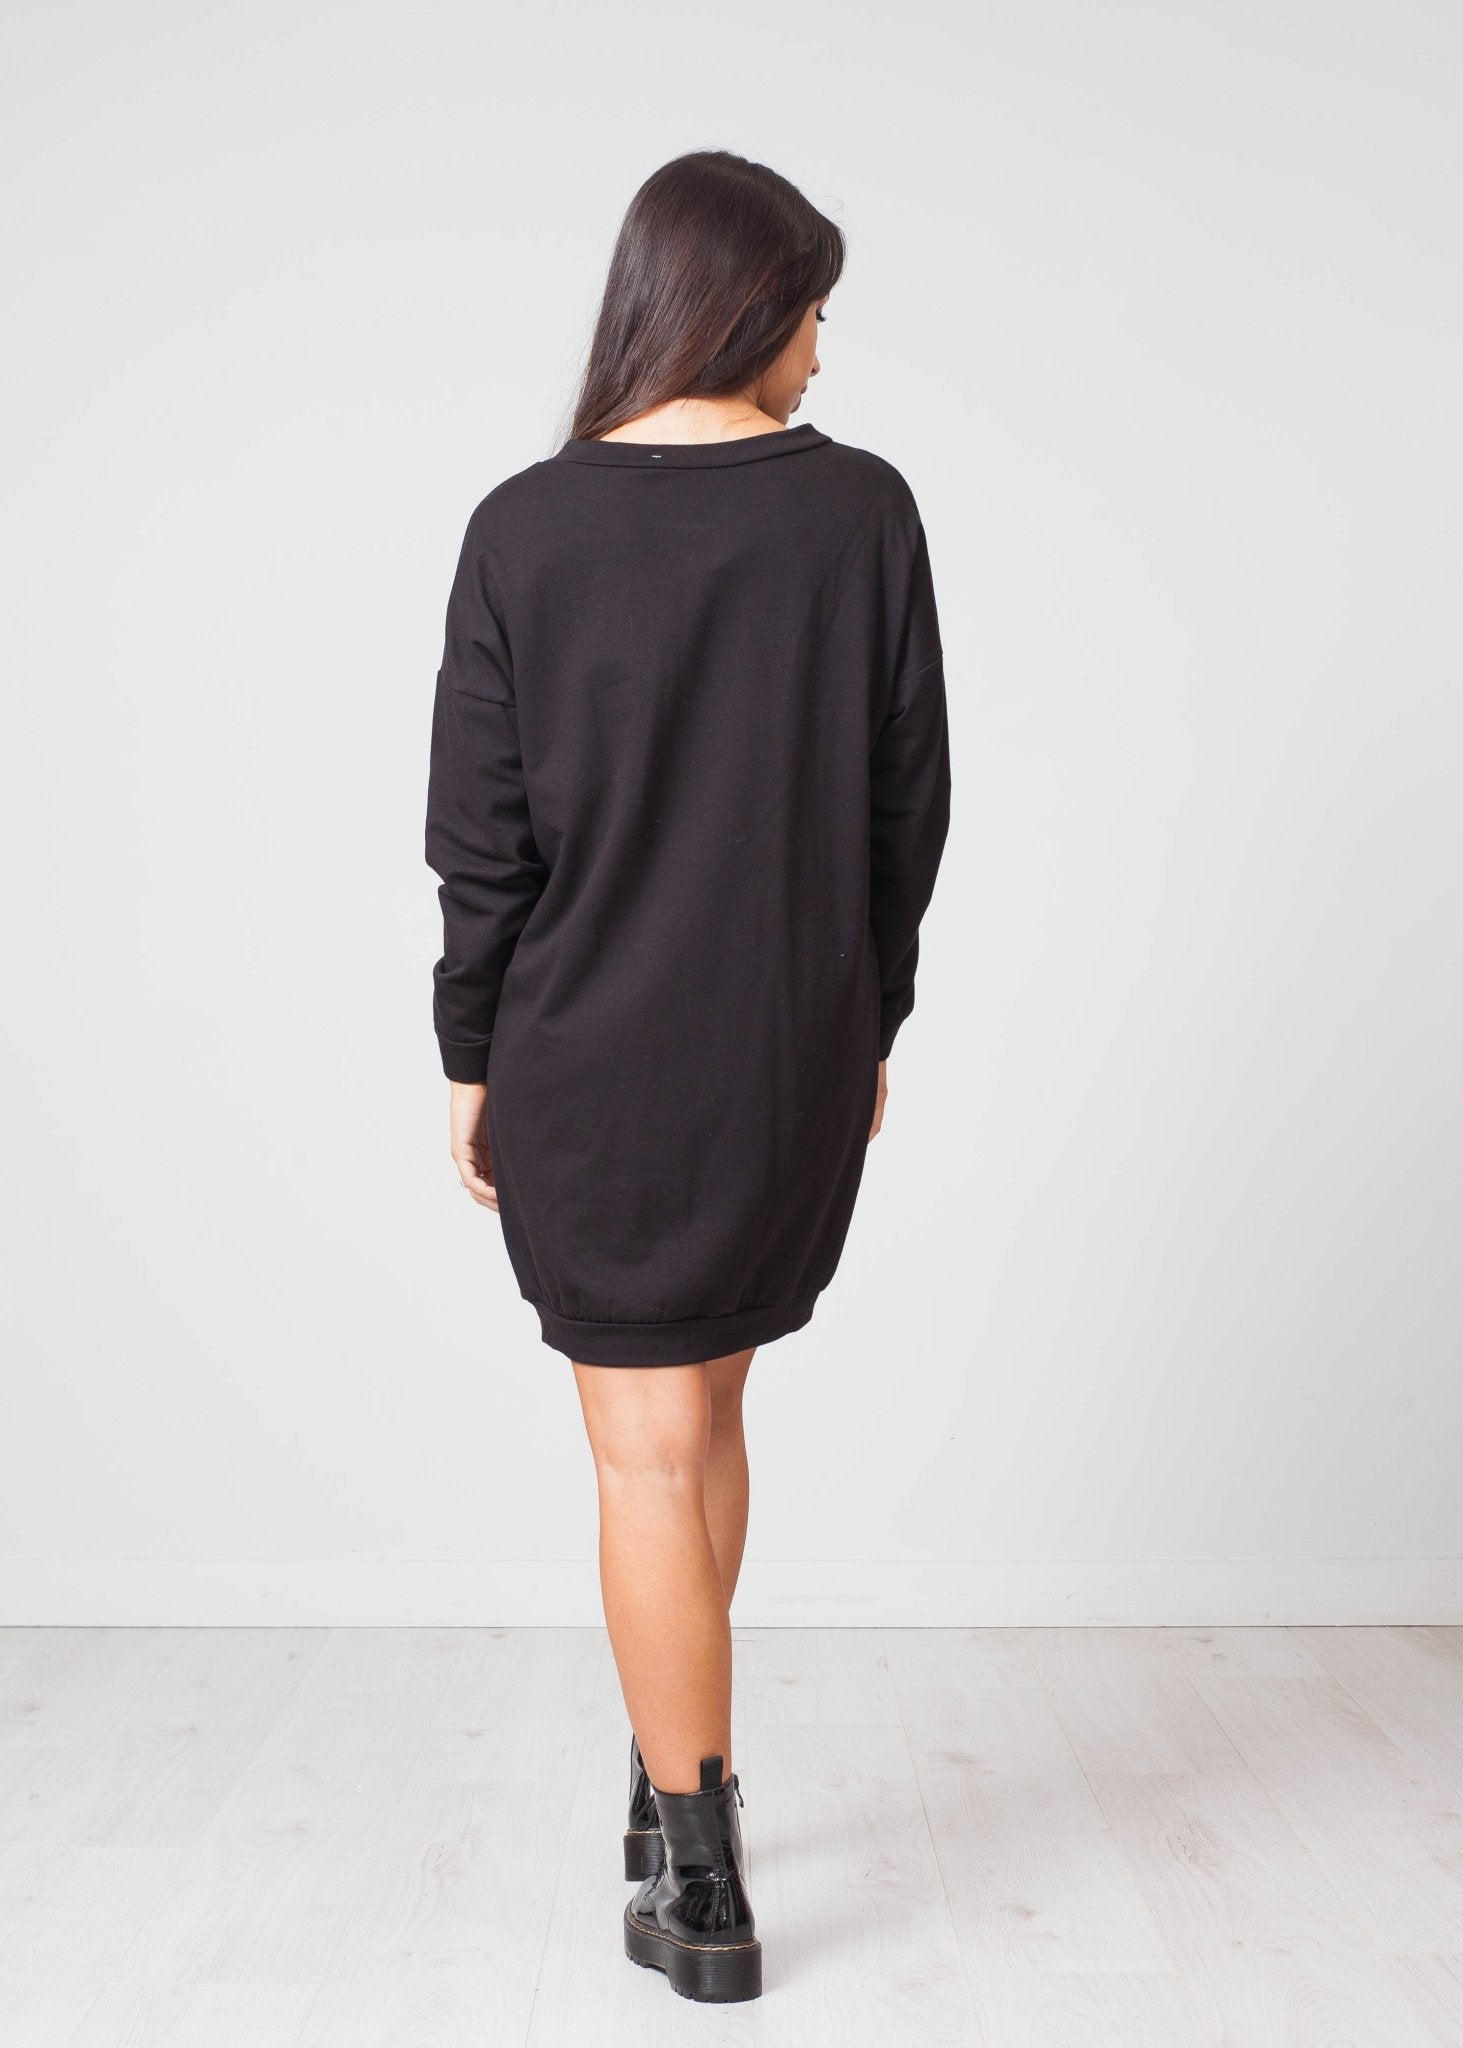 Priya Embellished Jumper Dress In Black - The Walk in Wardrobe